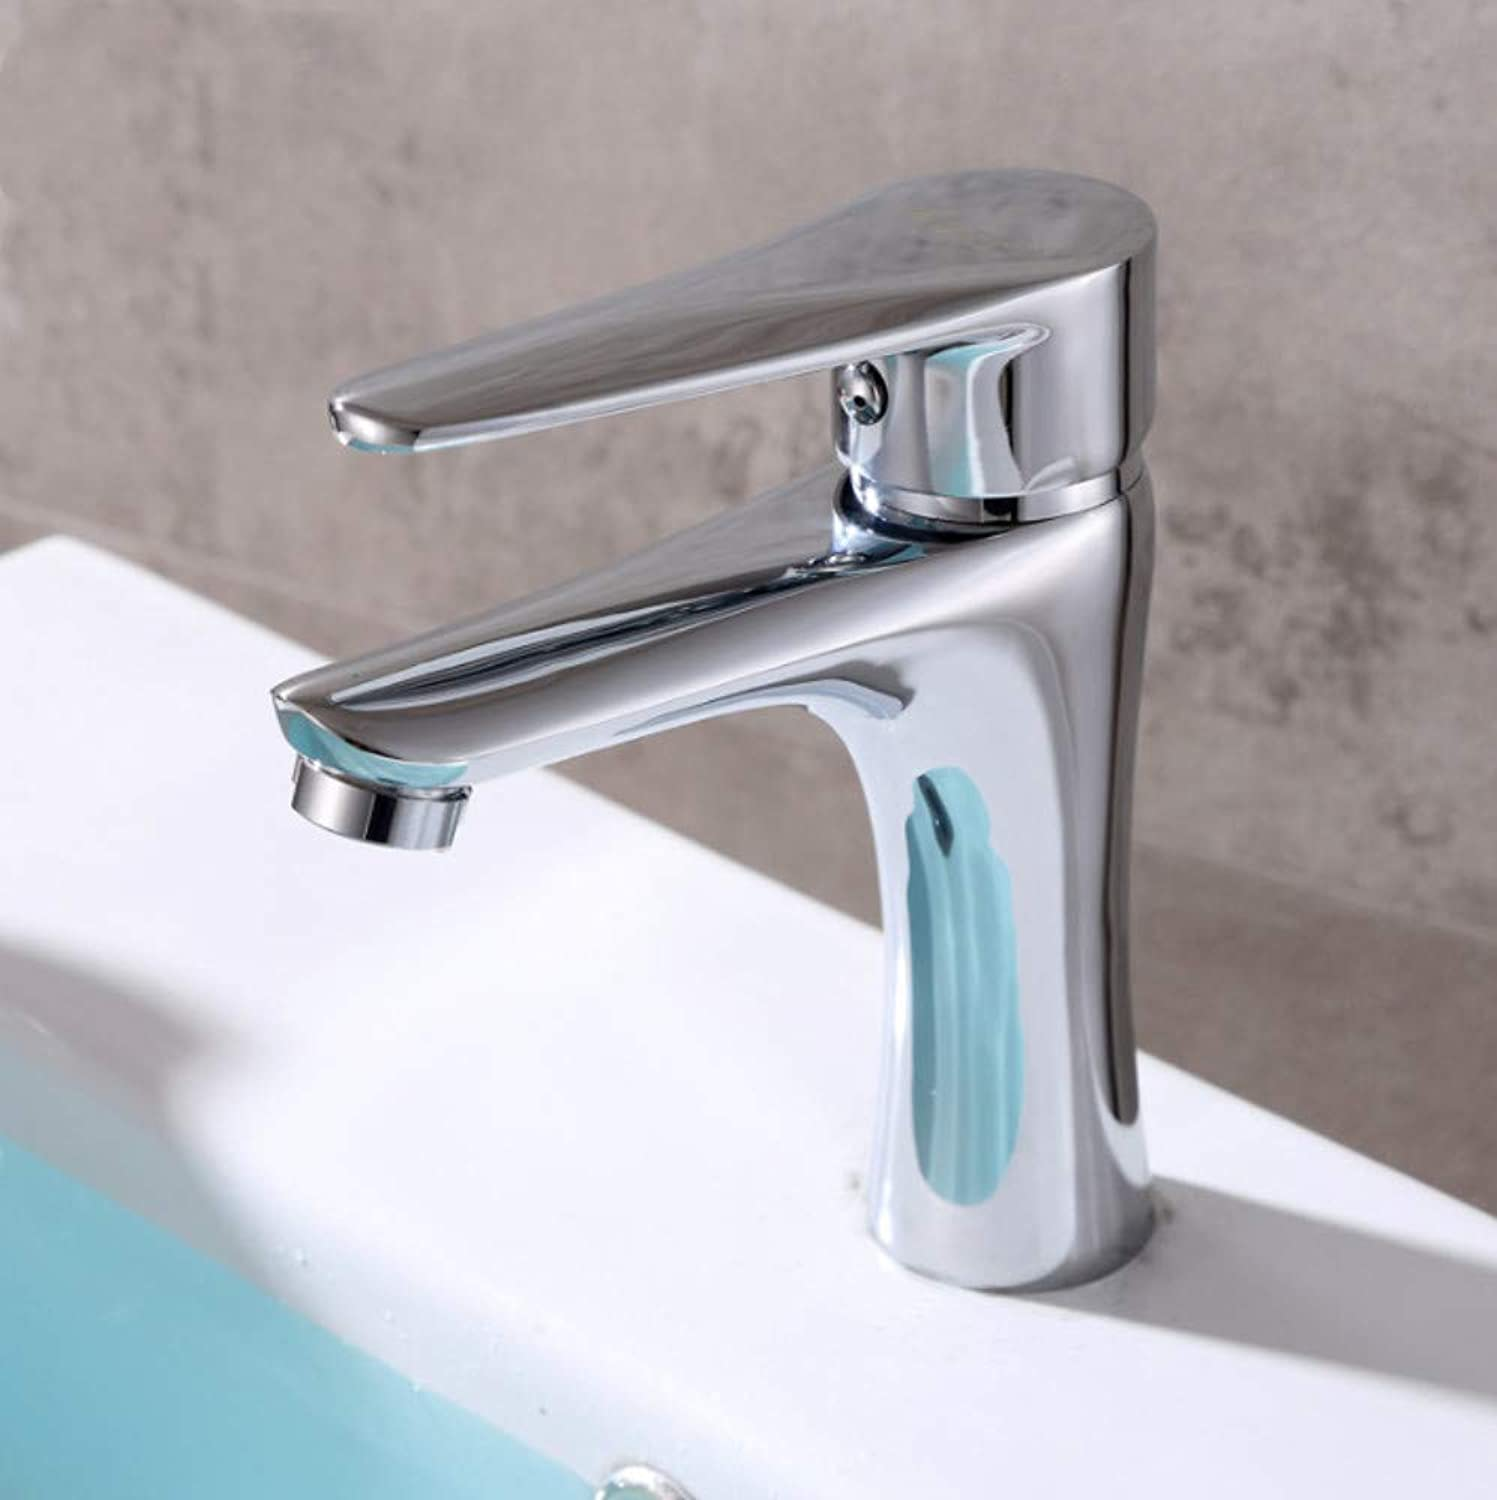 redOOY Taps Bathroom Sink Taps Shower Tapshot And Cold Basin Faucet_Hot And Cold Basin Faucet Single Hole Wash Basin Faucet